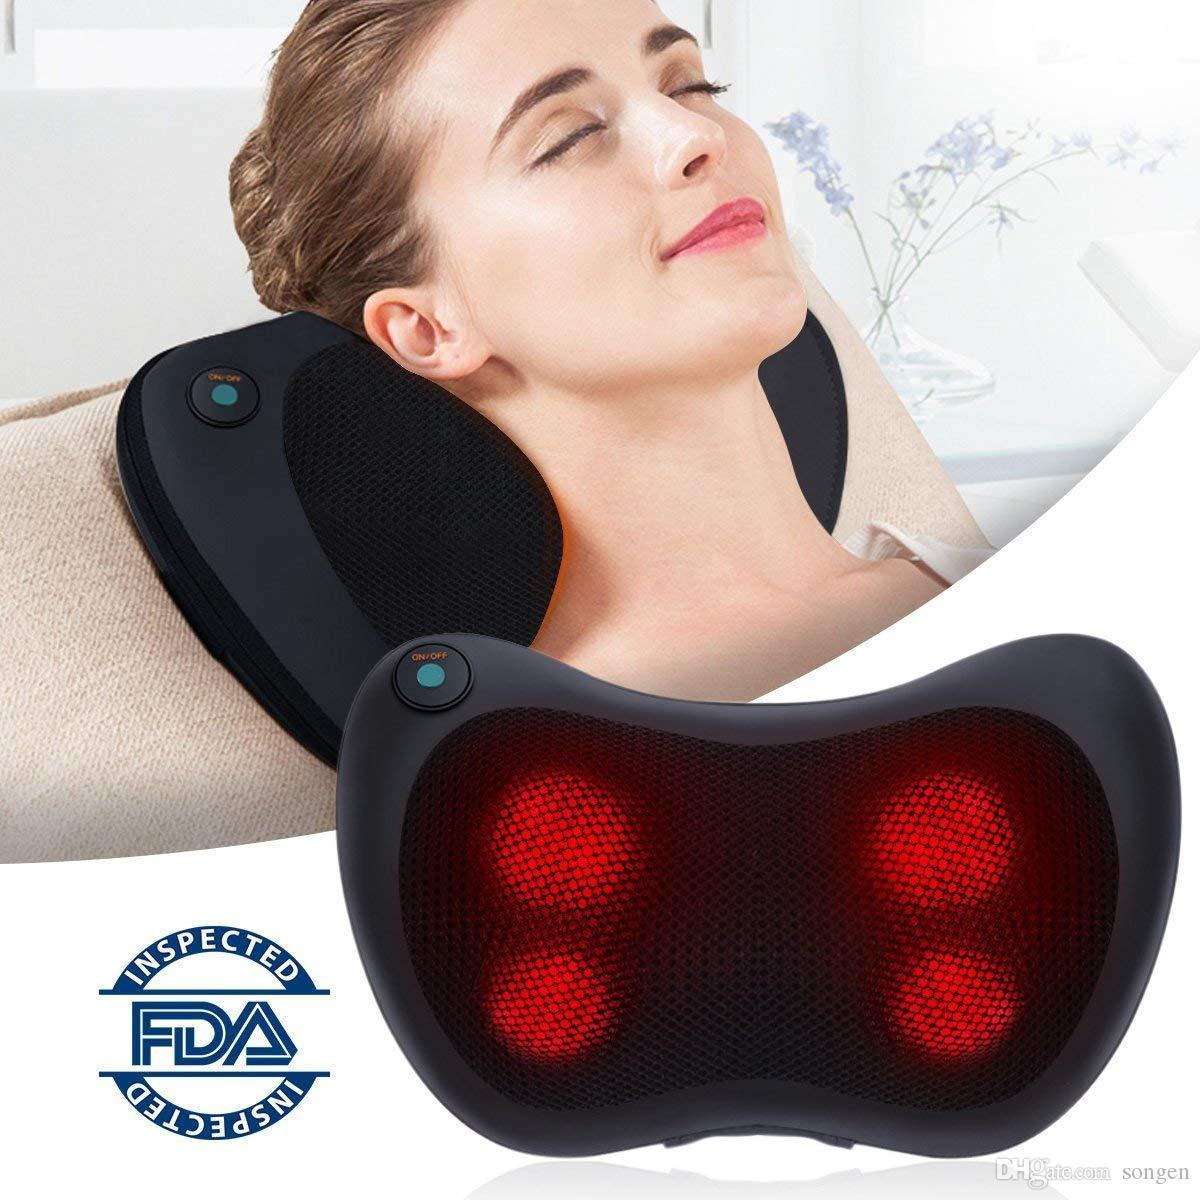 Shiatsu Neck Shoulder & Back Massager with Heat - Car Seat Head Rest Ready